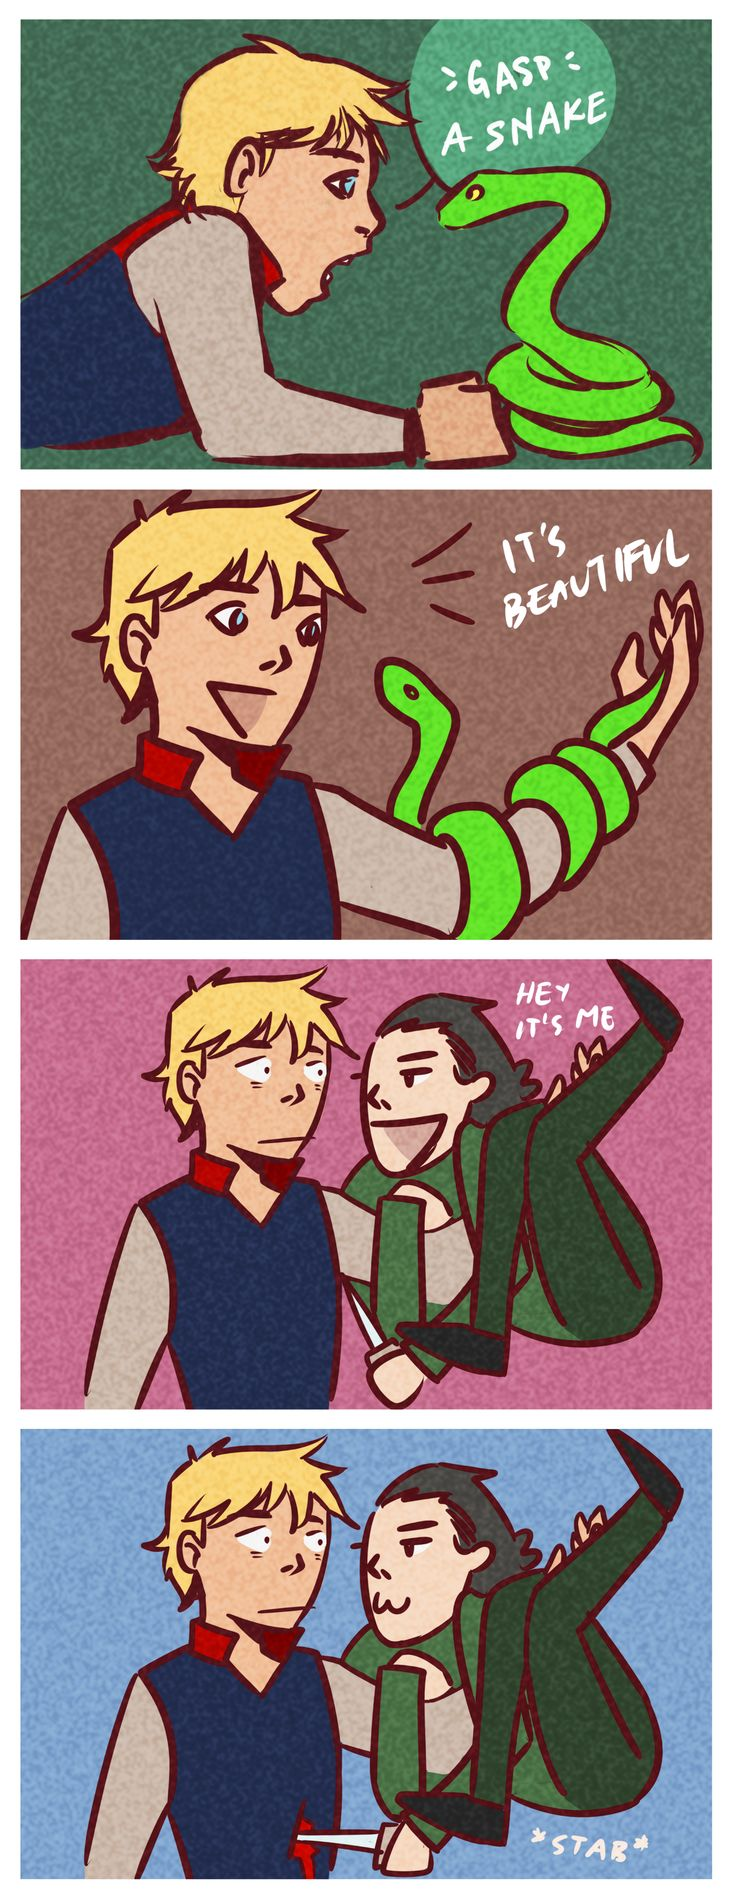 These fanarts are getting better xD